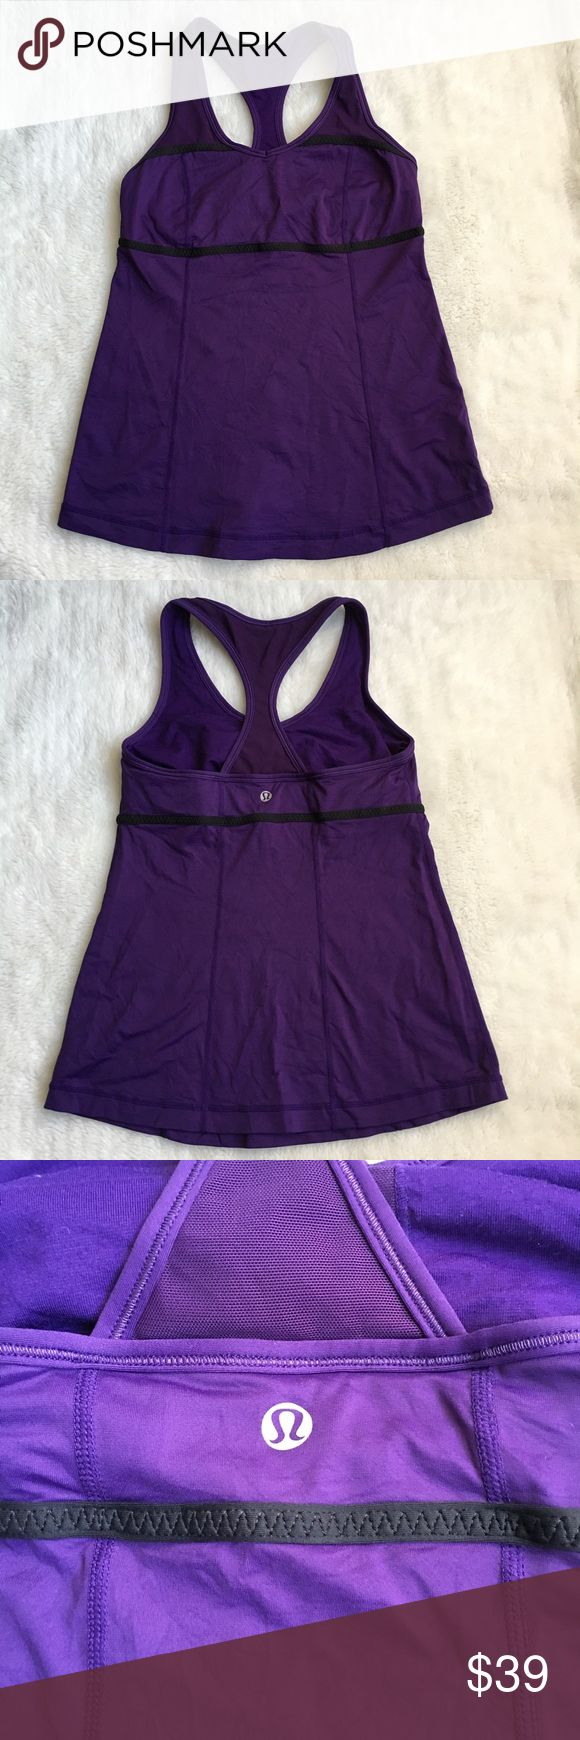 Lululemon Purple and Black Top size 6 Preowned barely worn Lululemon Purple and Black Top size 6. Builtin bra, no pads. Please look at pictures for better reference. Happy shopping!!T1 lululemon athletica Tops Tank Tops